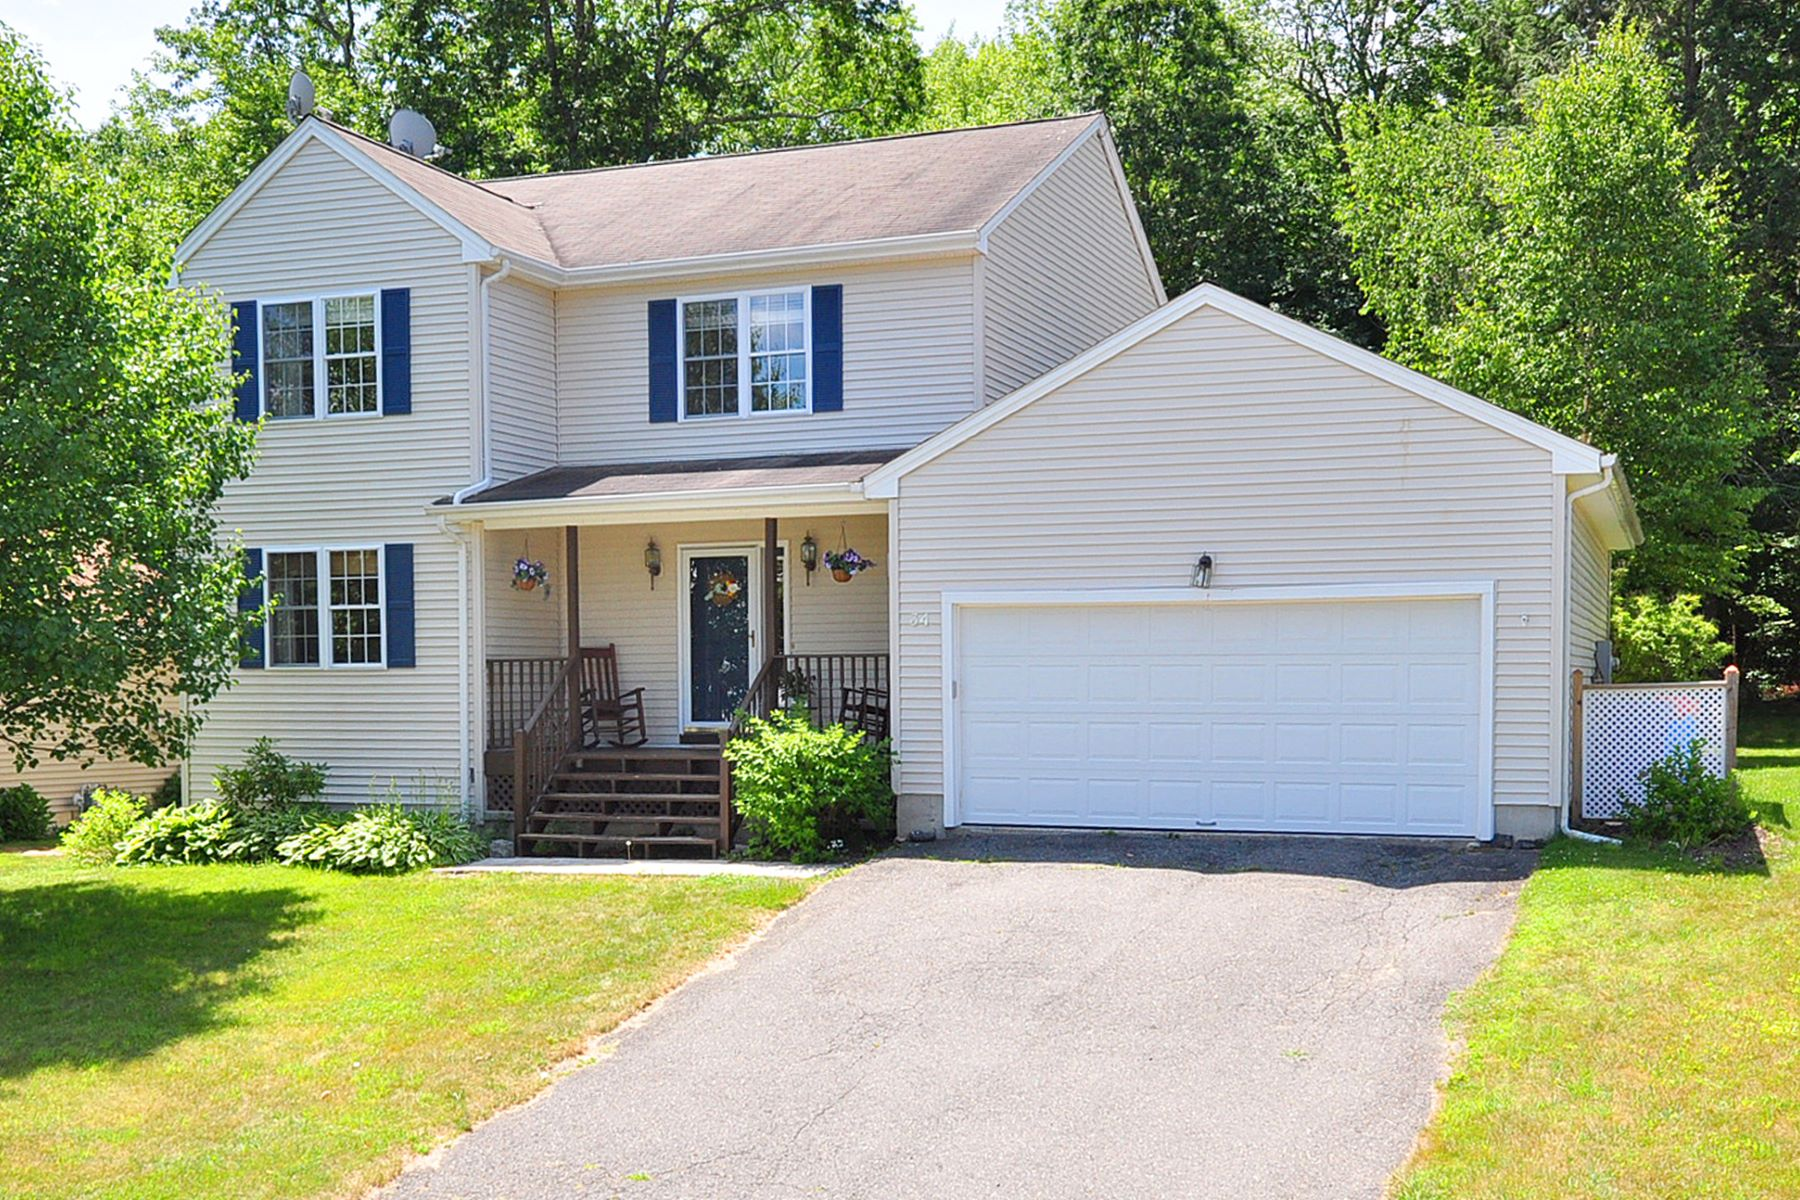 Single Family Homes for Sale at Beautiful Open Concept Colonial 34 Arbor Ridge Road Torrington, Connecticut 06790 United States